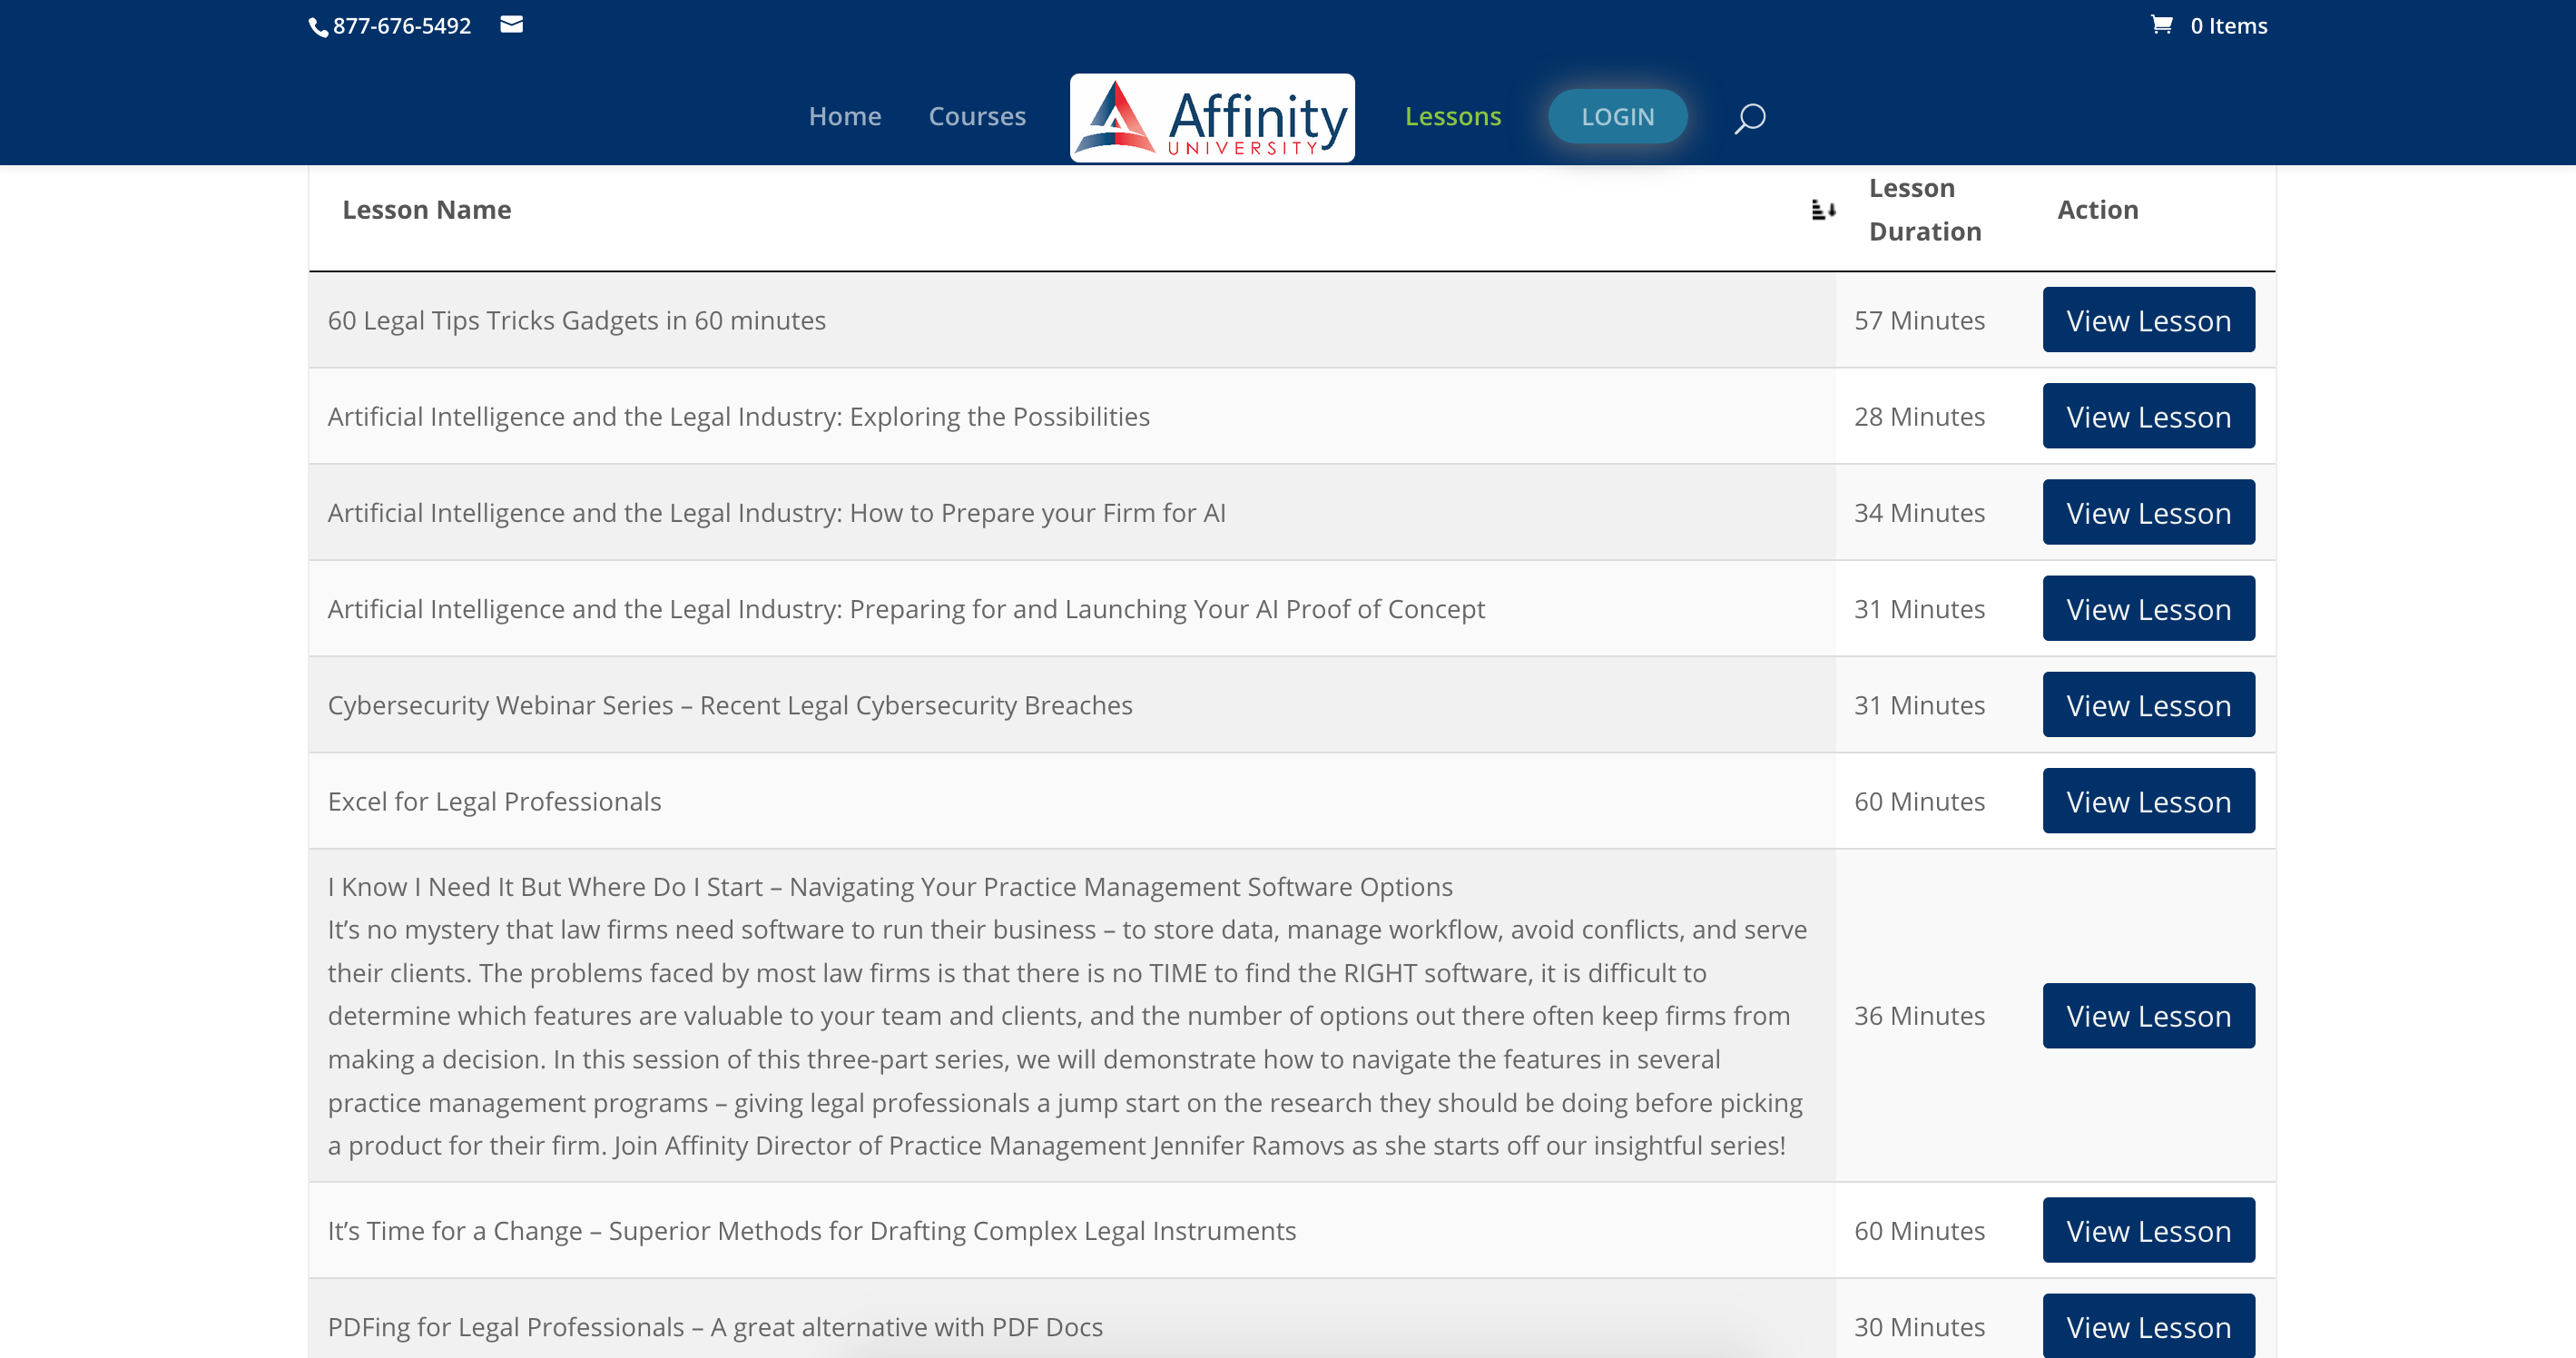 Affinity University continuing education CLE MCLE online courses with custom built LMS e-learning eLearning platform